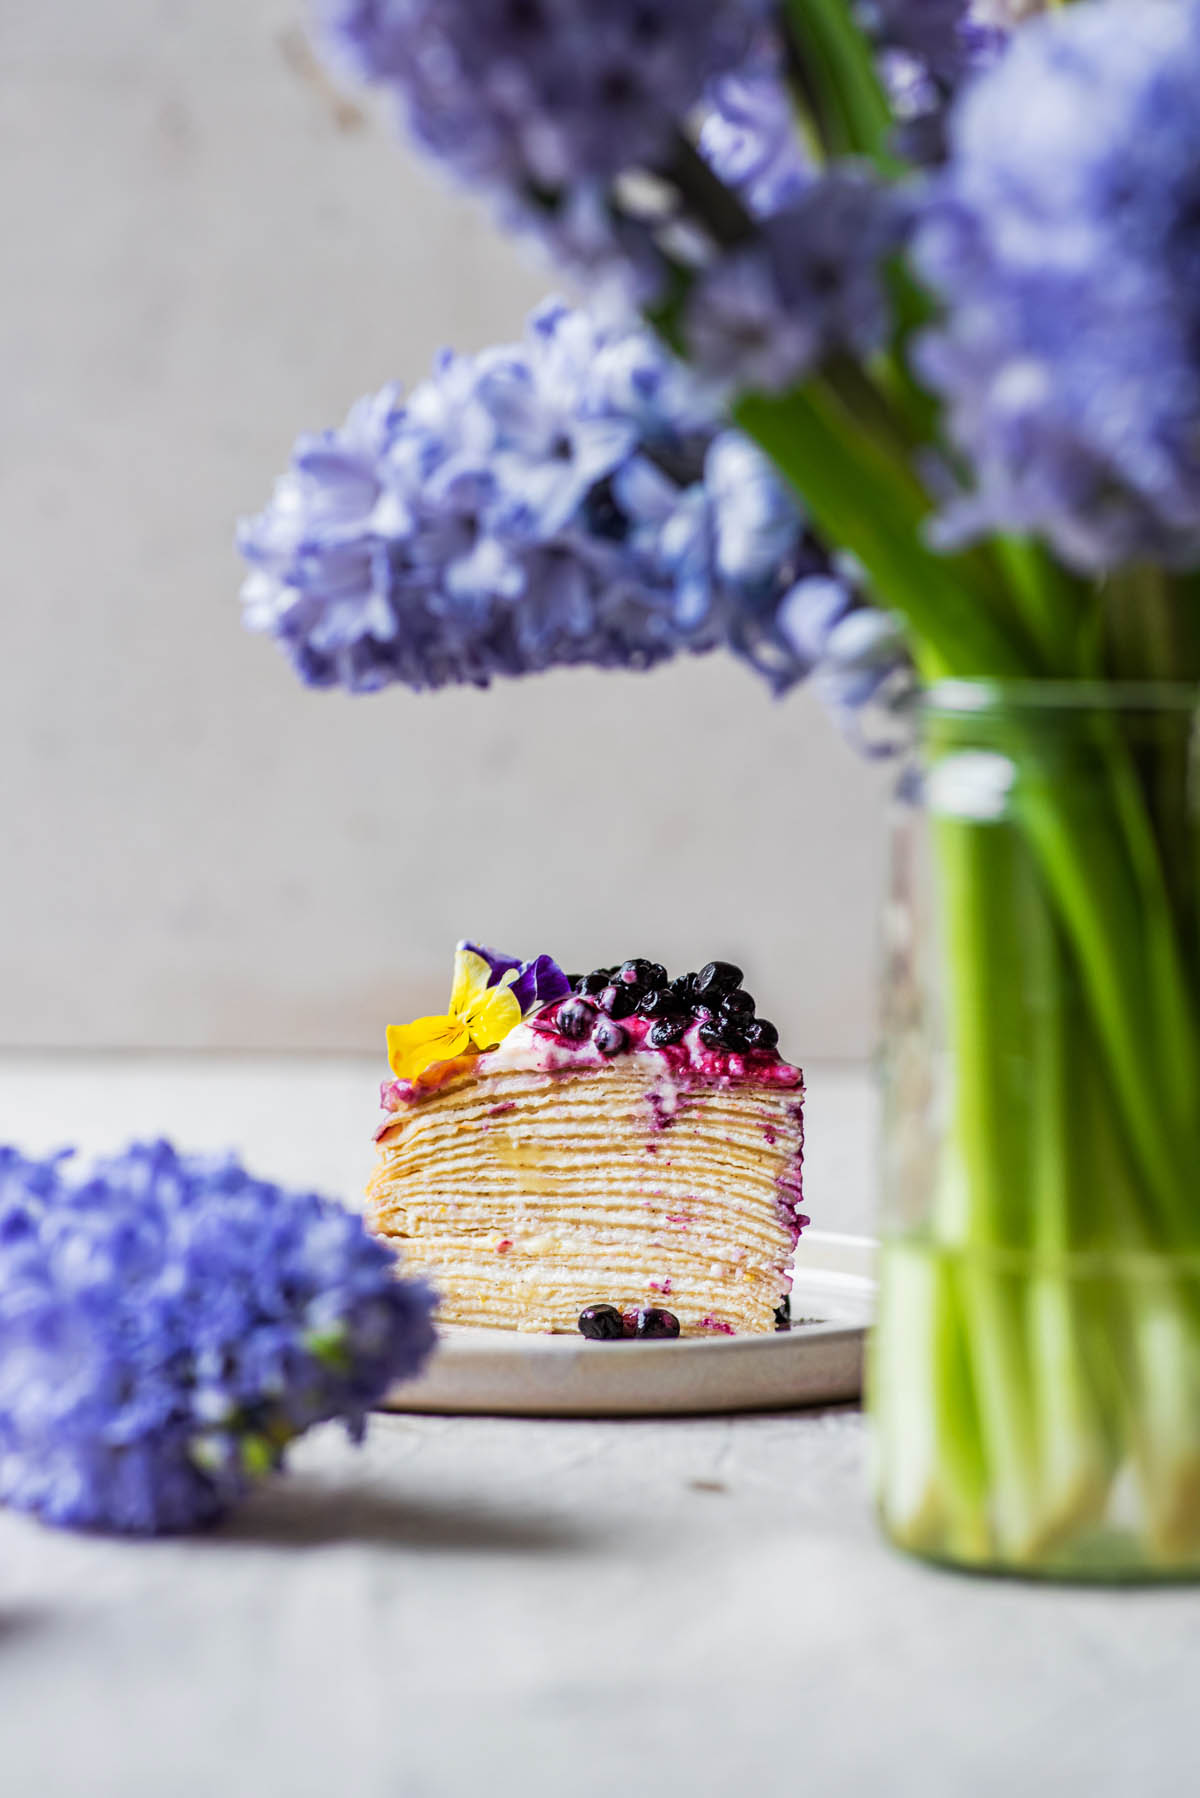 Cake slice with hyacinth in forefront.